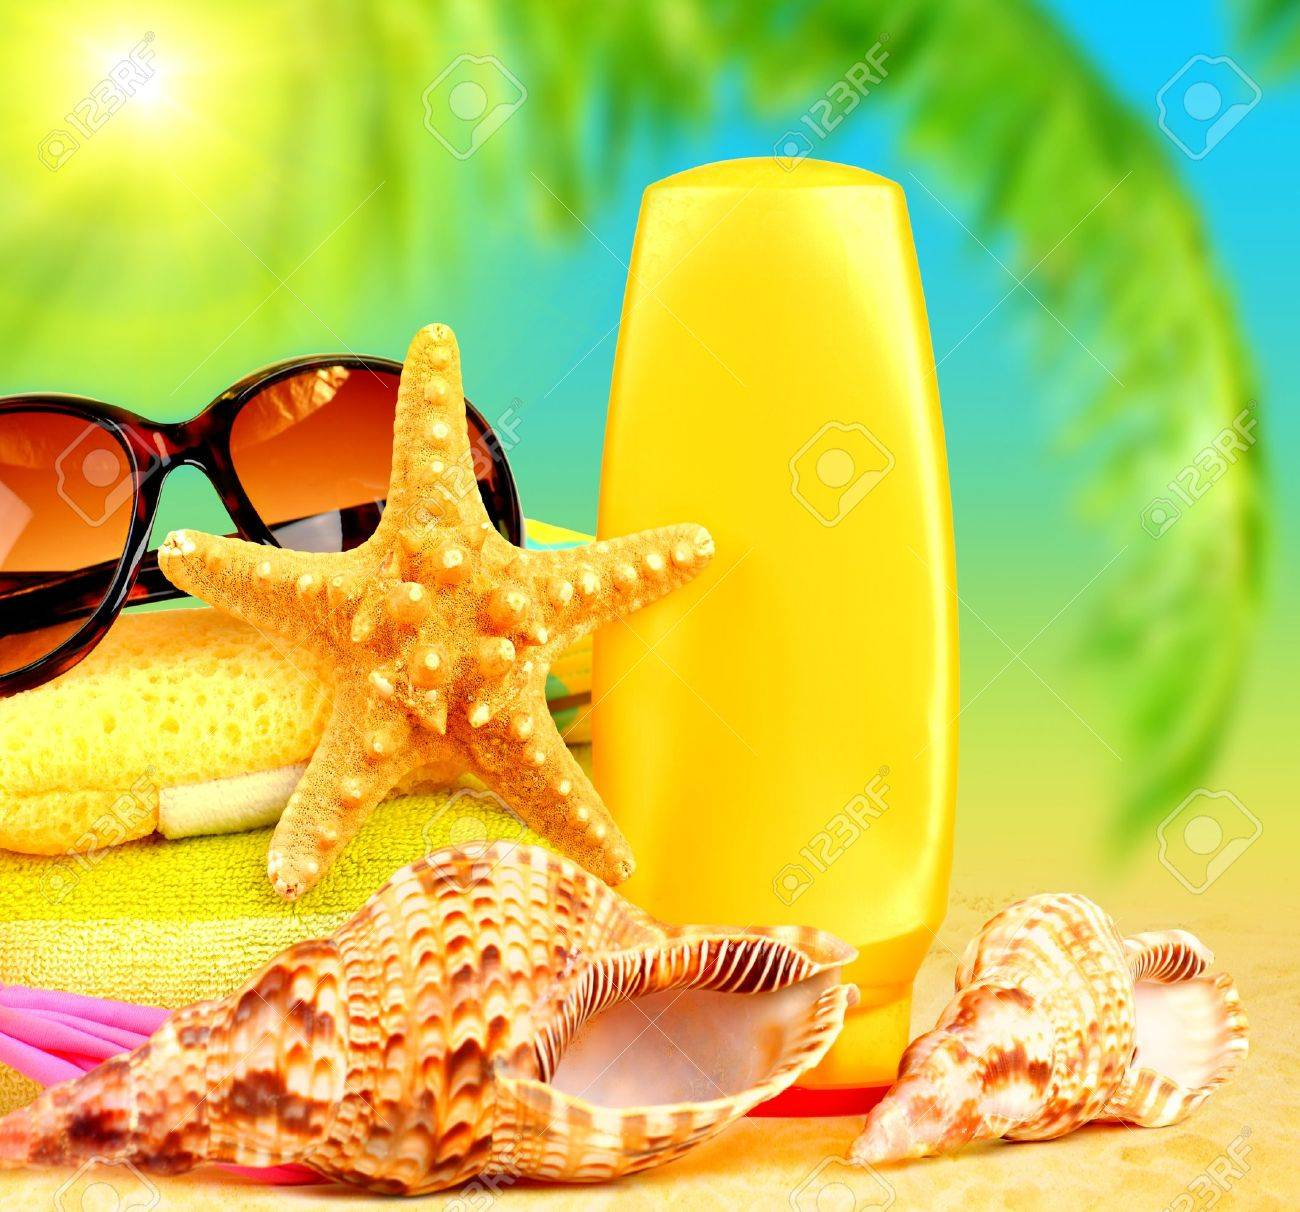 beach items stock photos royalty free beach items images and pictures